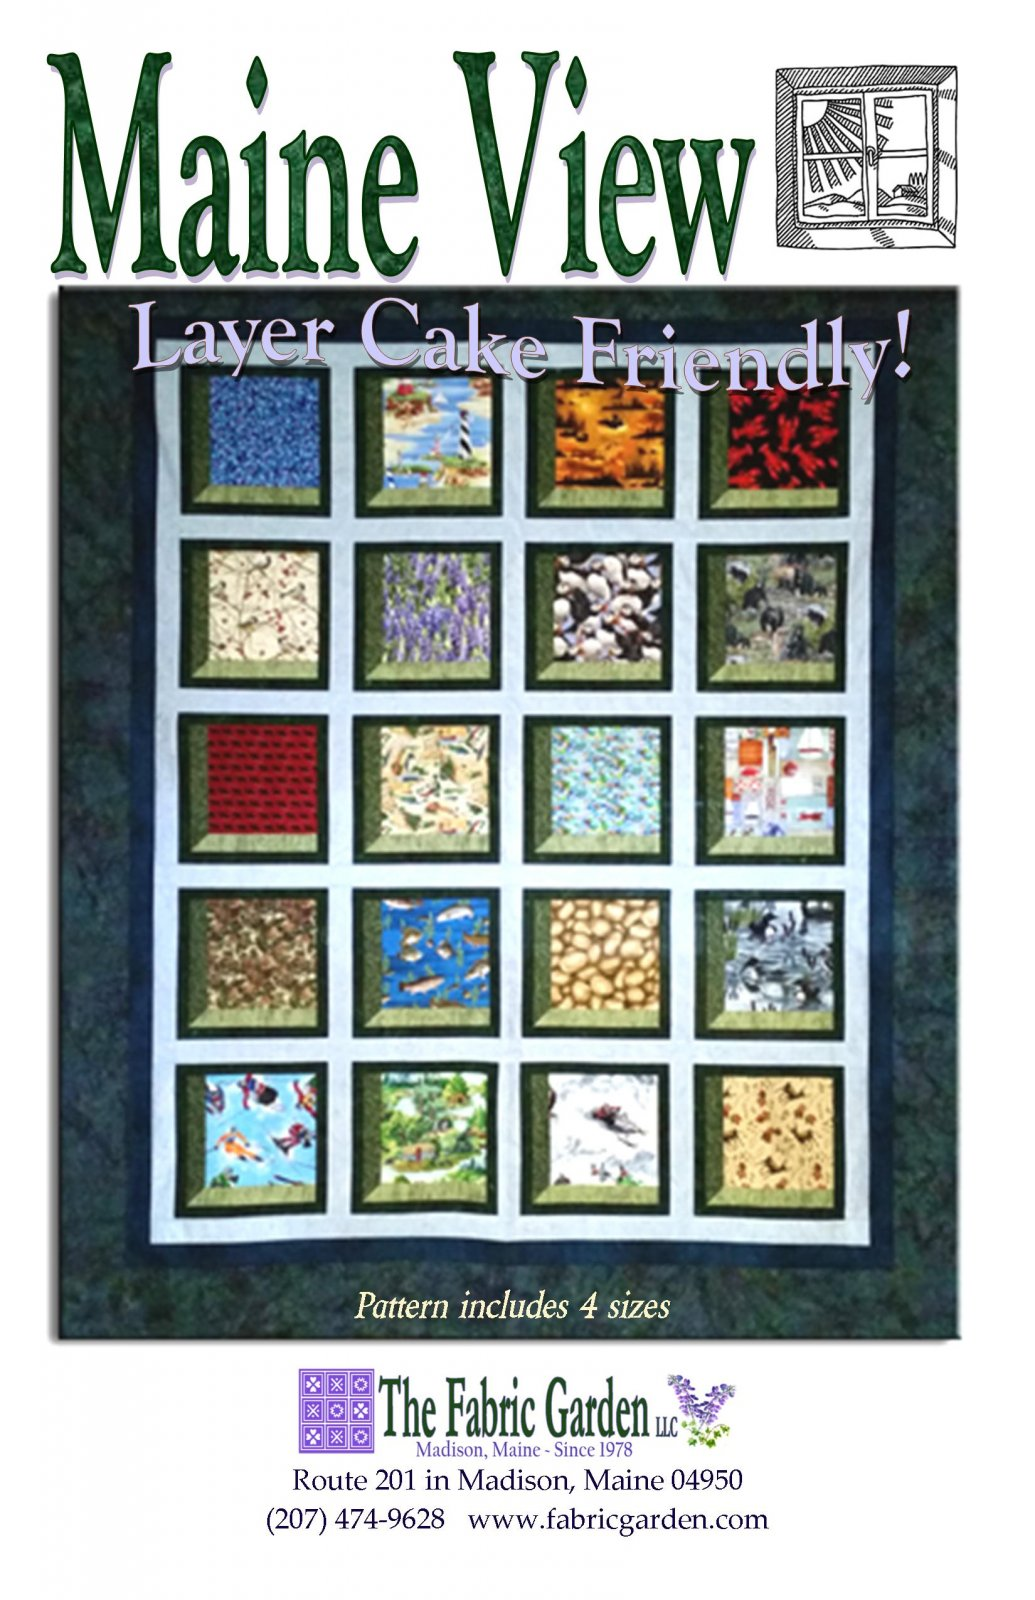 The Fabric Garden - Maine View Quilt Pattern